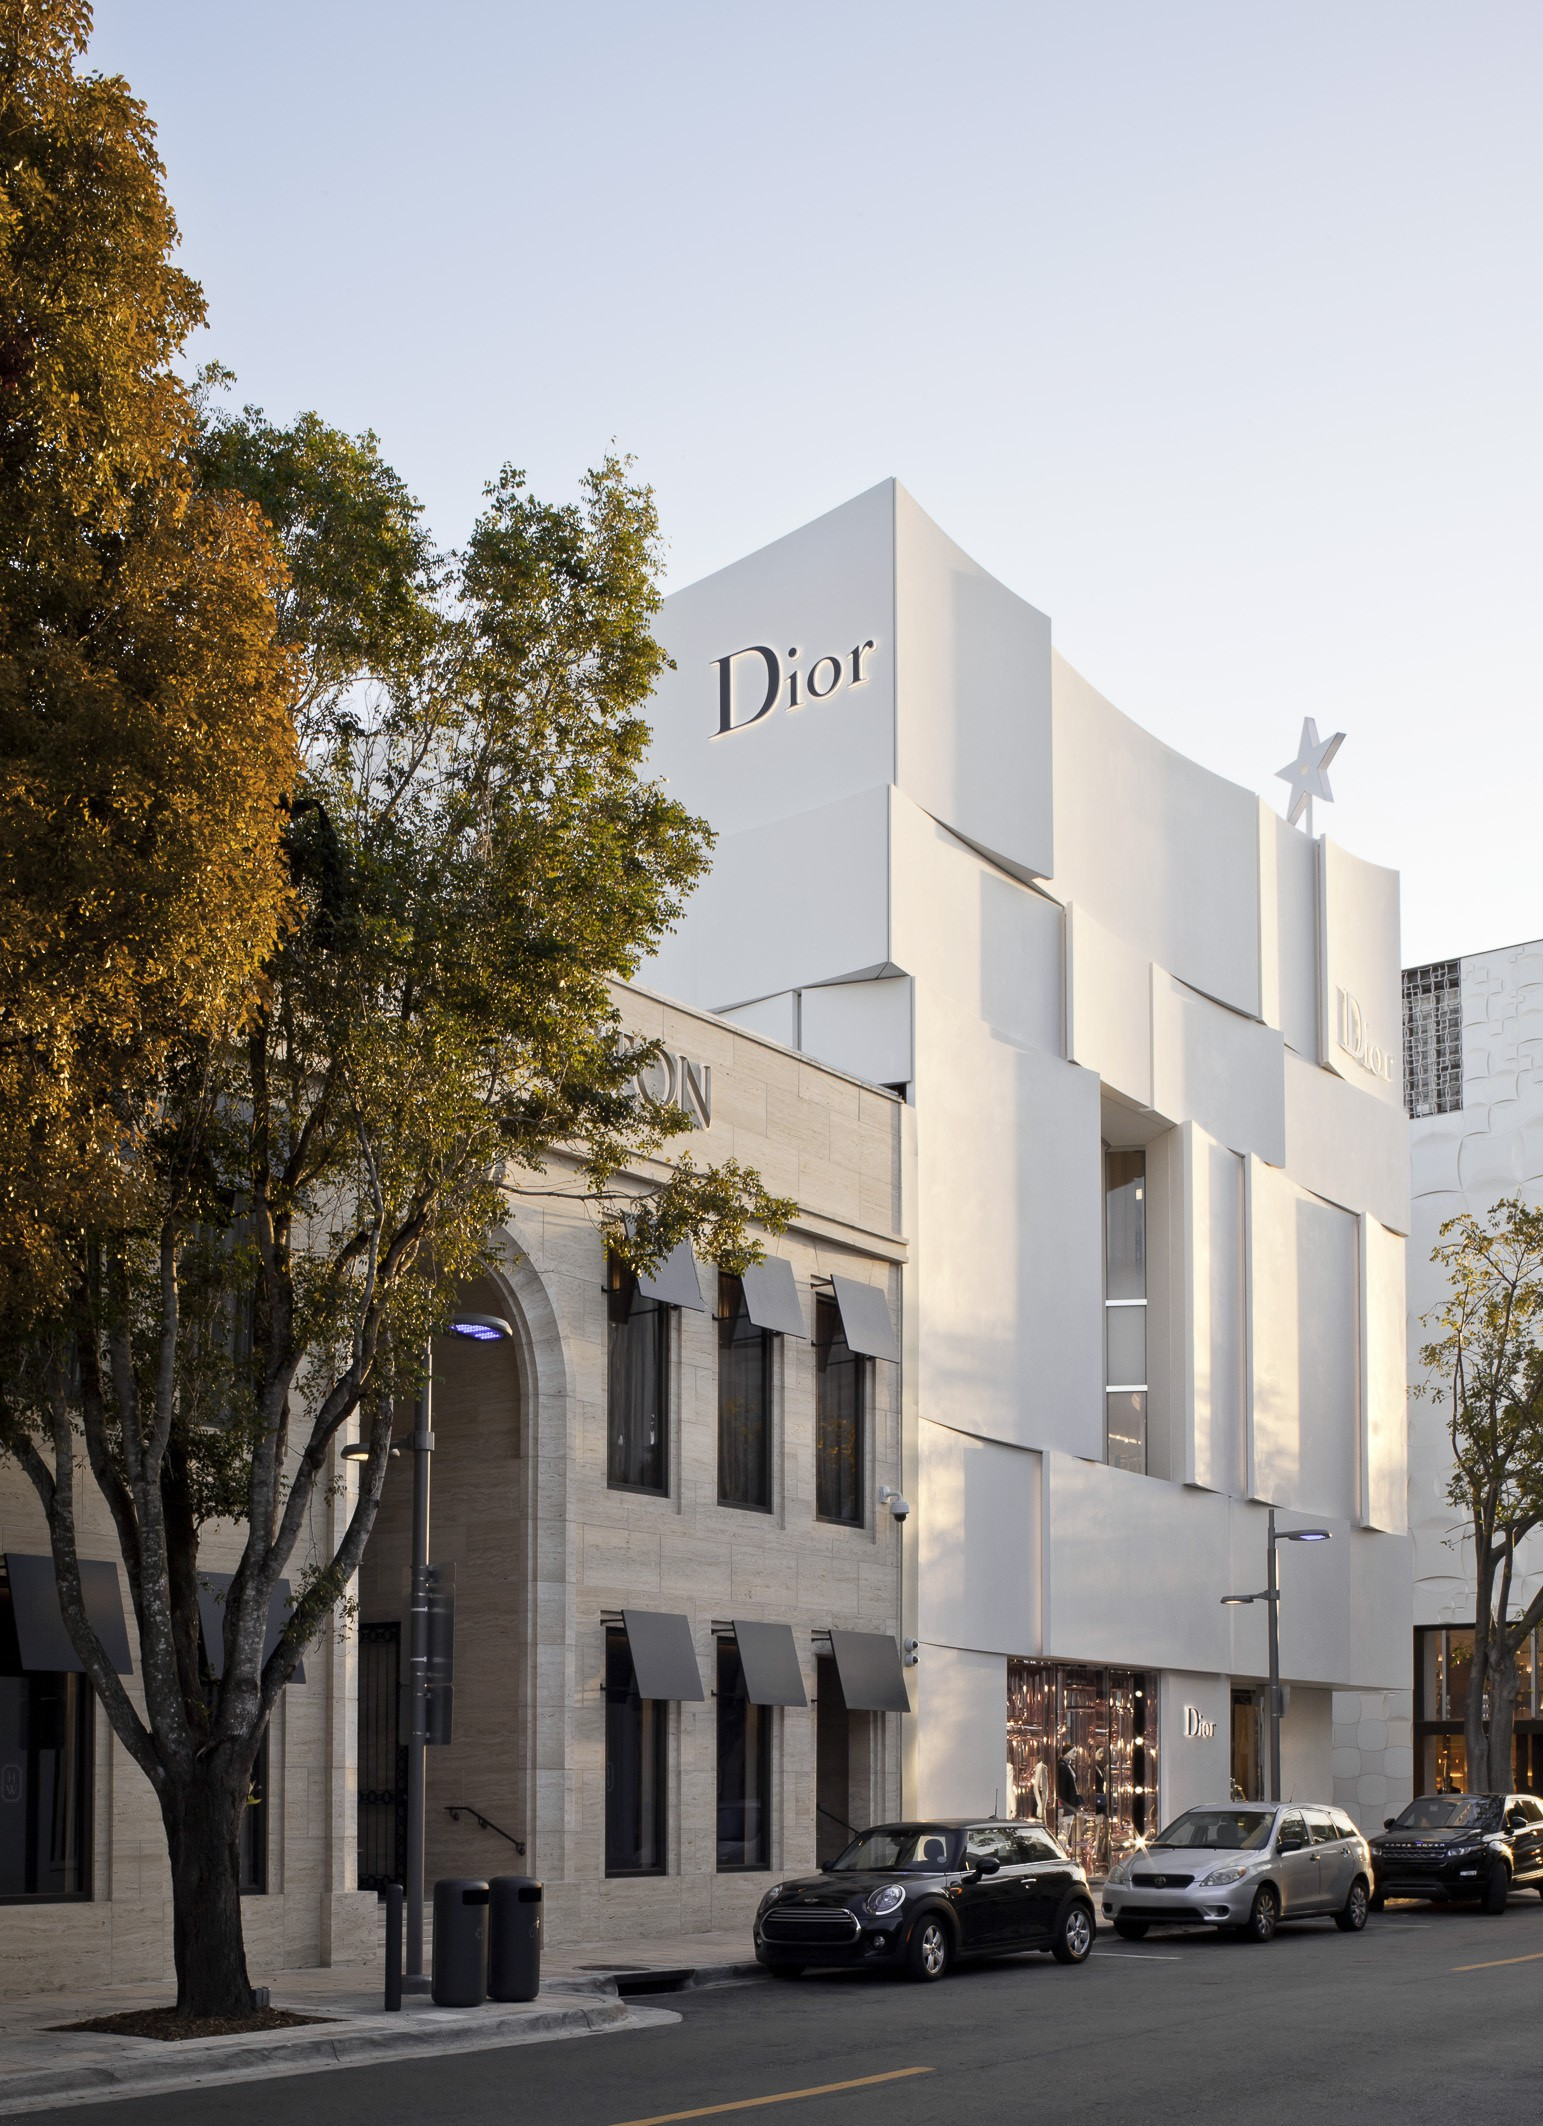 Dior Miami Facade-yesonfashion-com-02